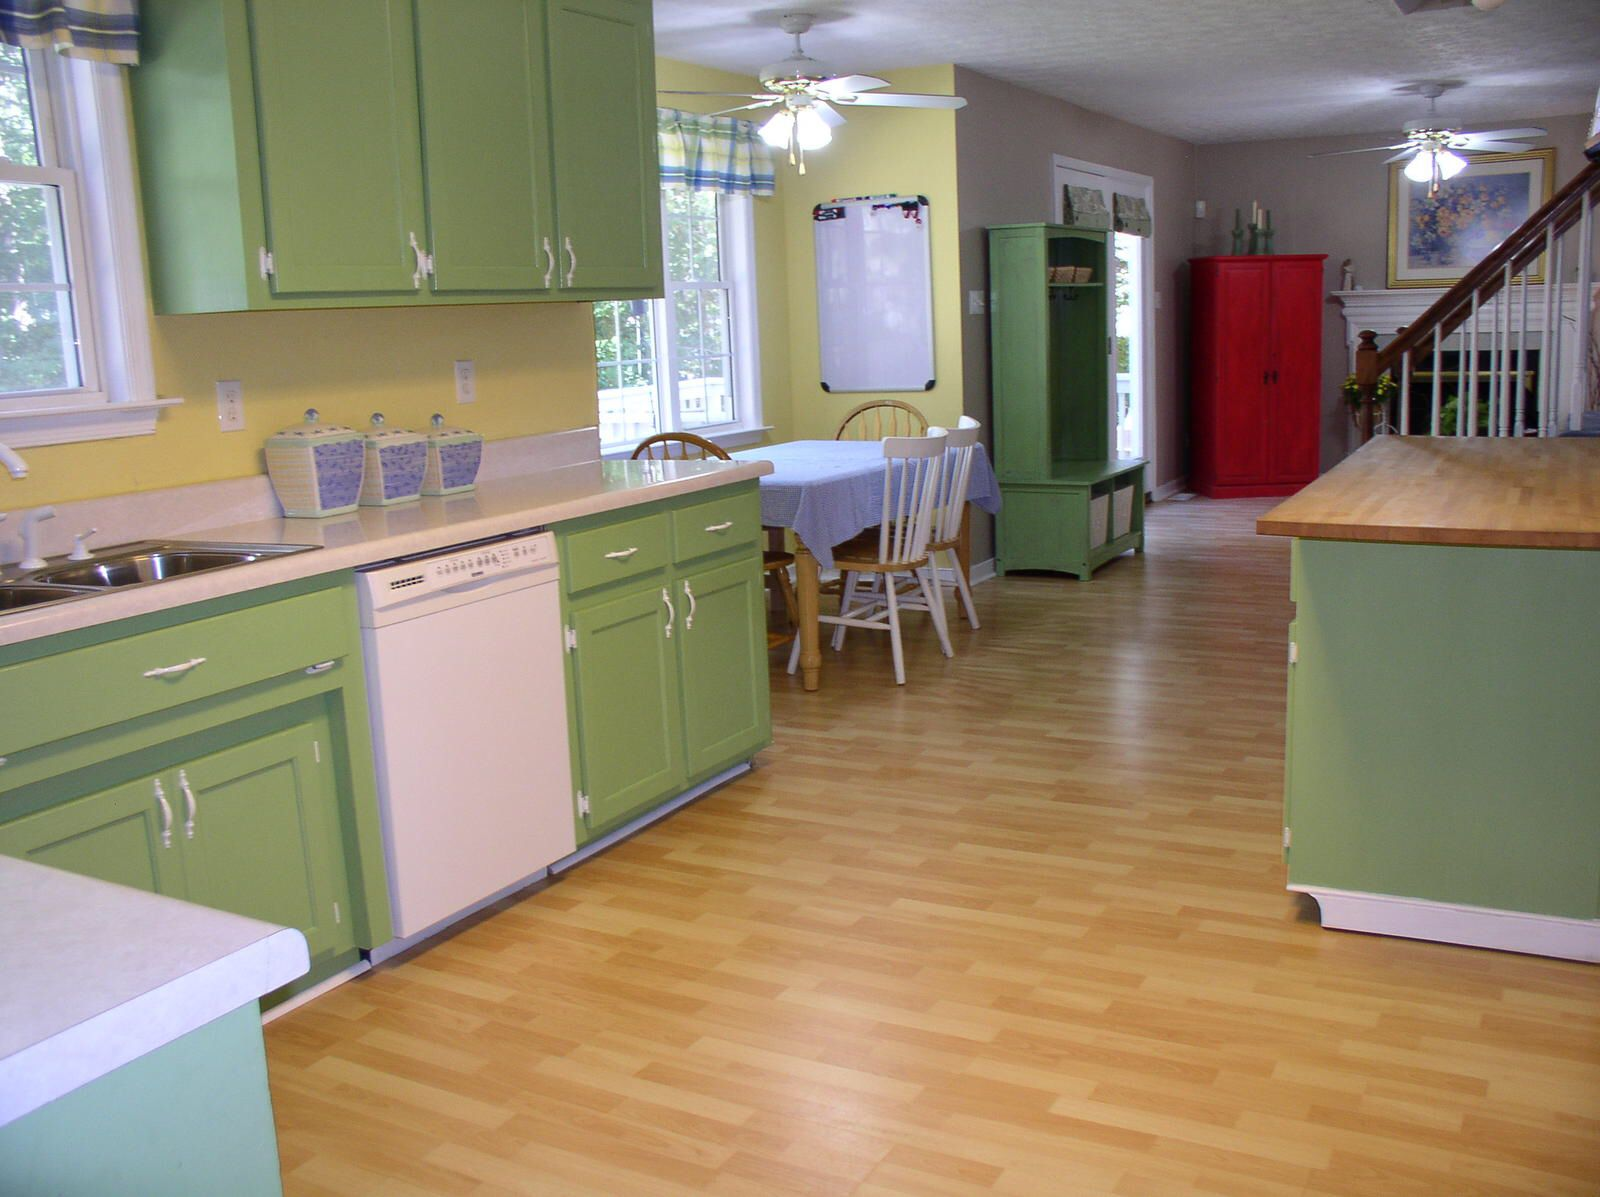 Image from http://490west.com/wp-content/uploads/2015/01/green-painted-kitchen-cabinets-9czc6aqv.jpg.